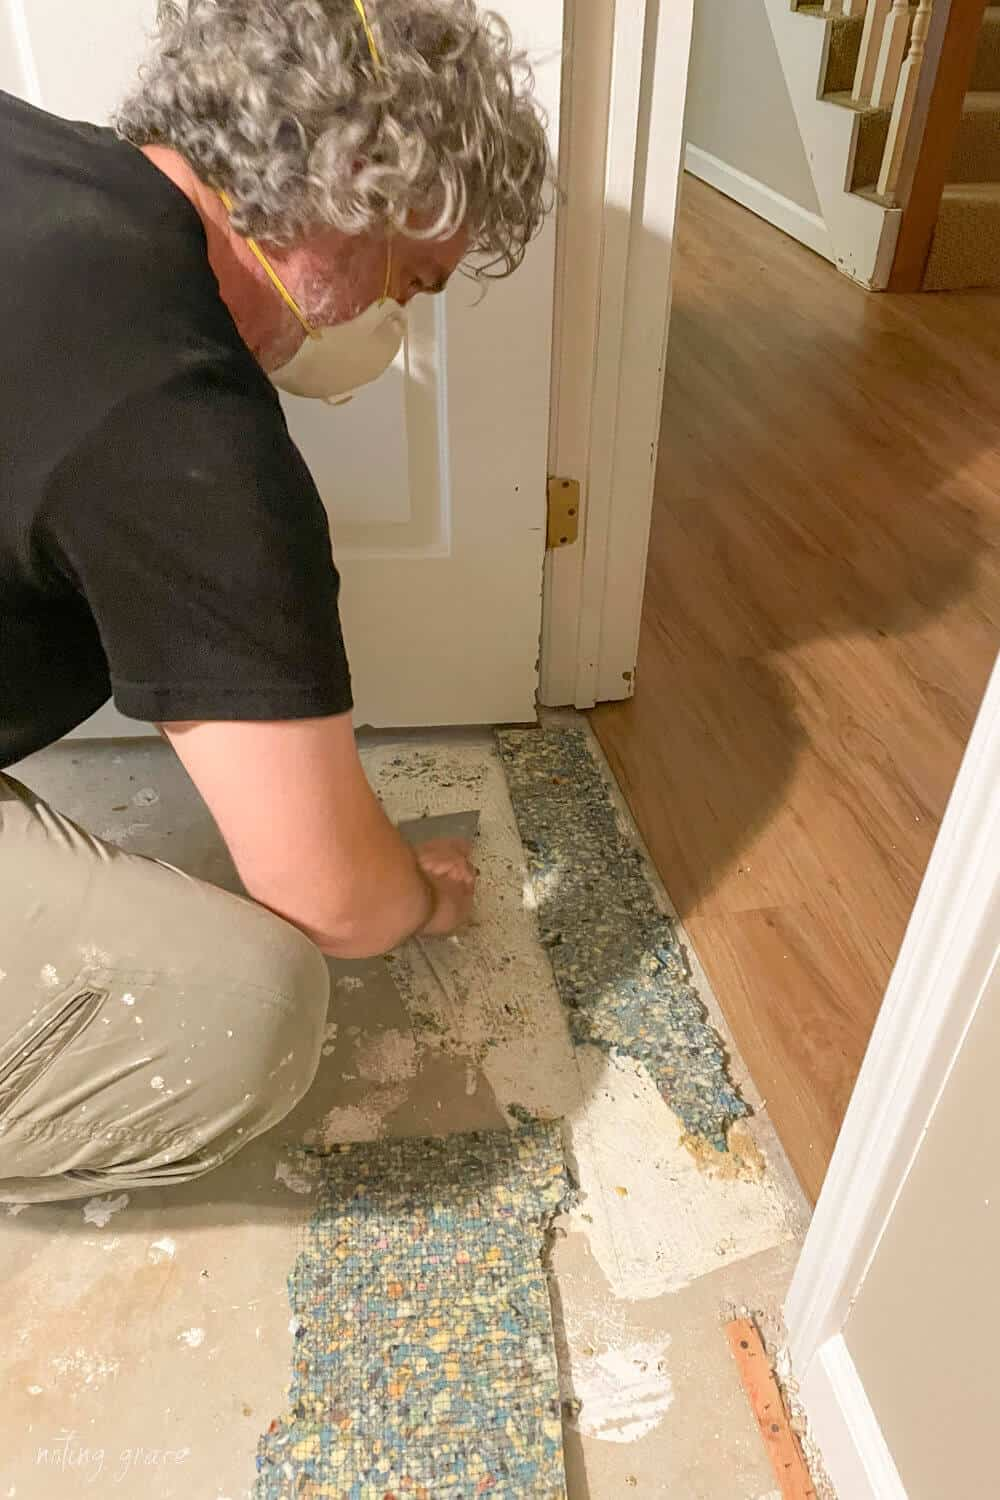 man with gray curly hair wearing a breathing mask scraping carpet pad remnants from concrete basement floor